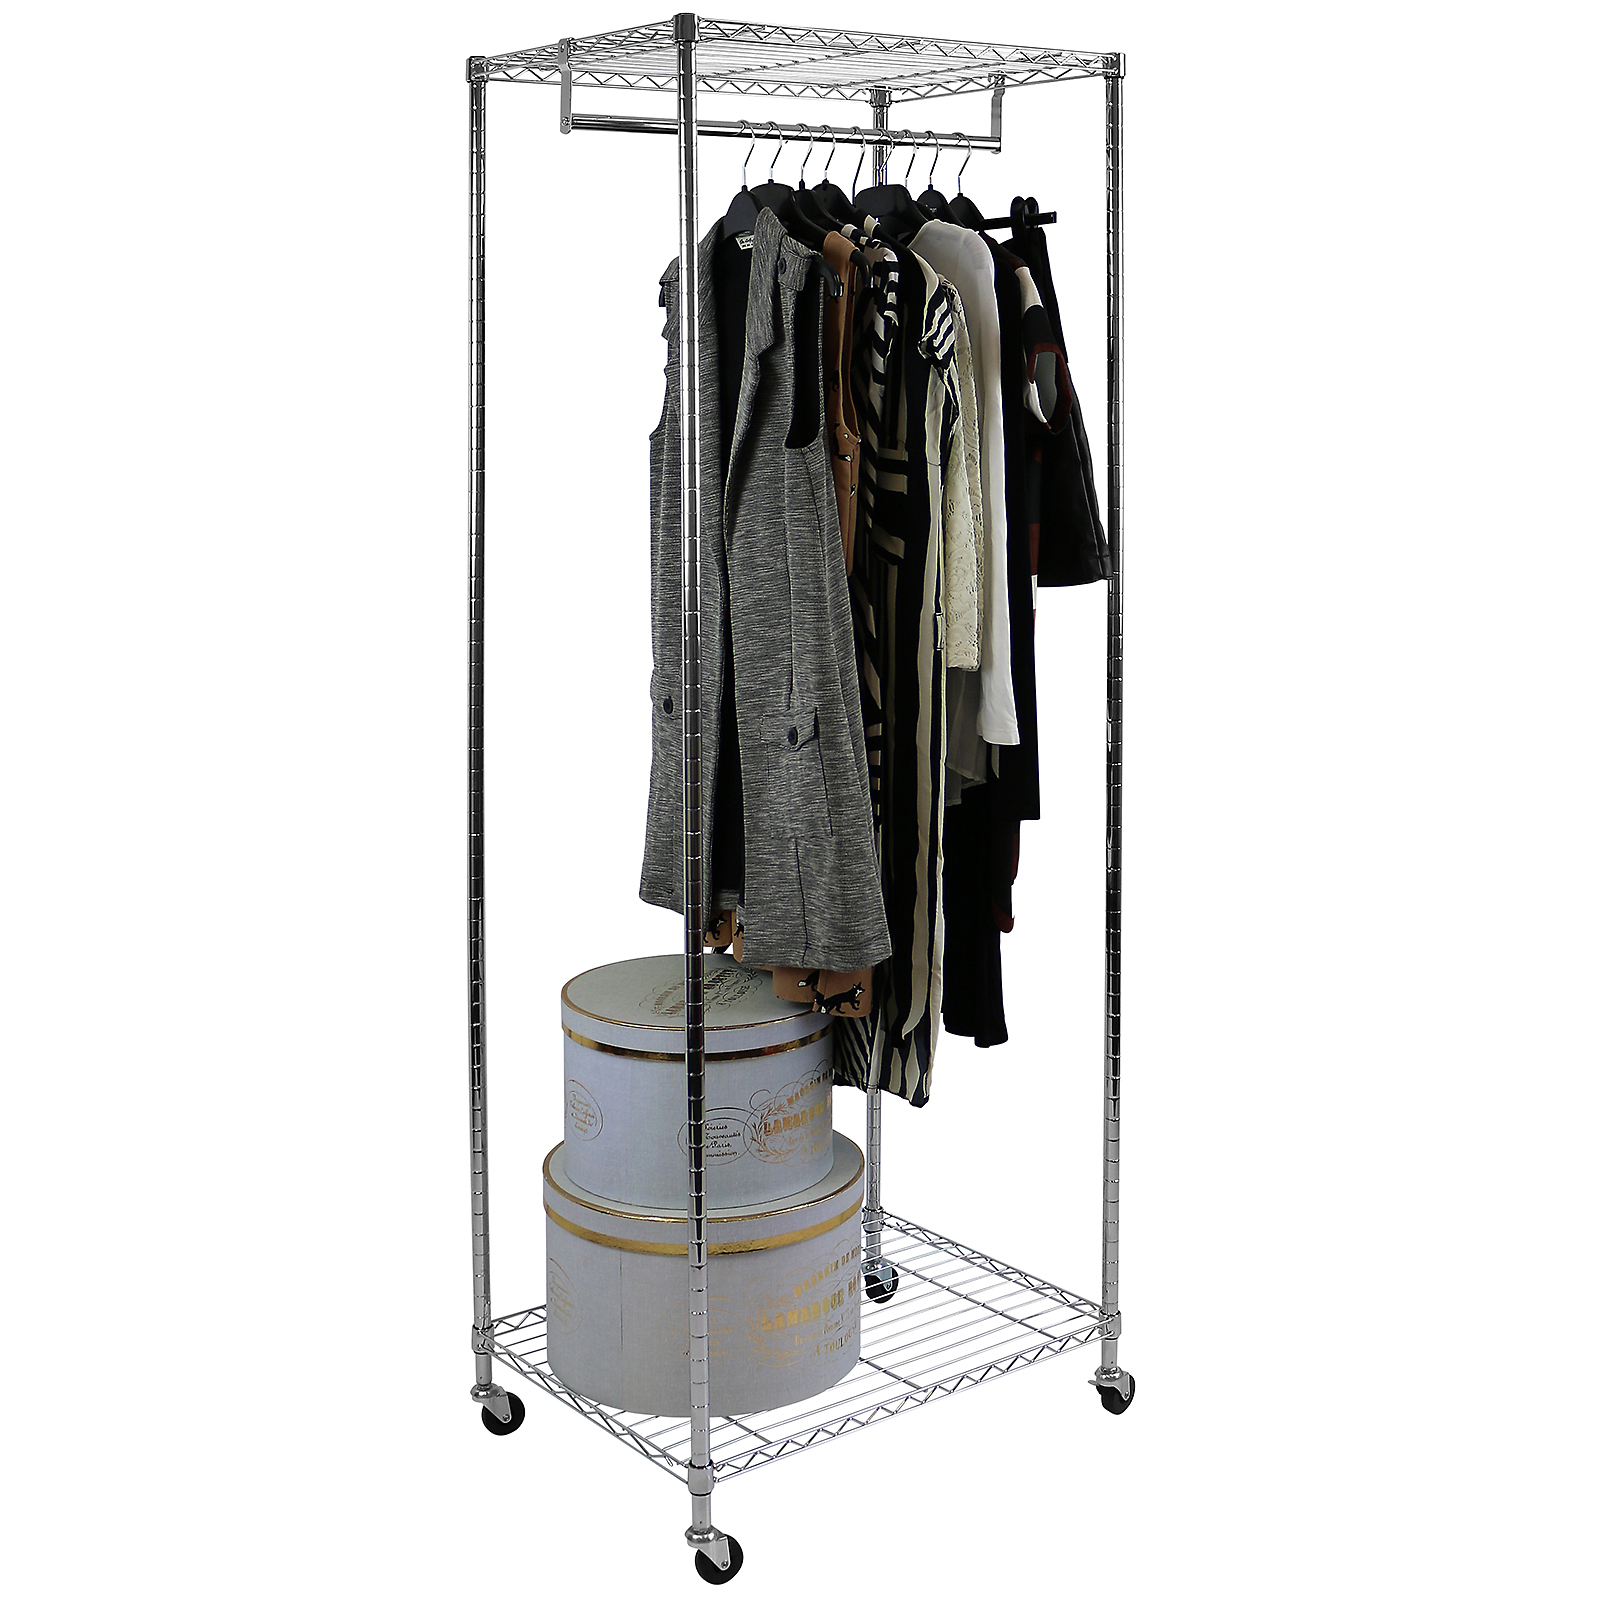 garment for target rack clothes hallway horseshoe hanging magazine paper wire modern coat small stand foldable decoration office pants grey bathroom